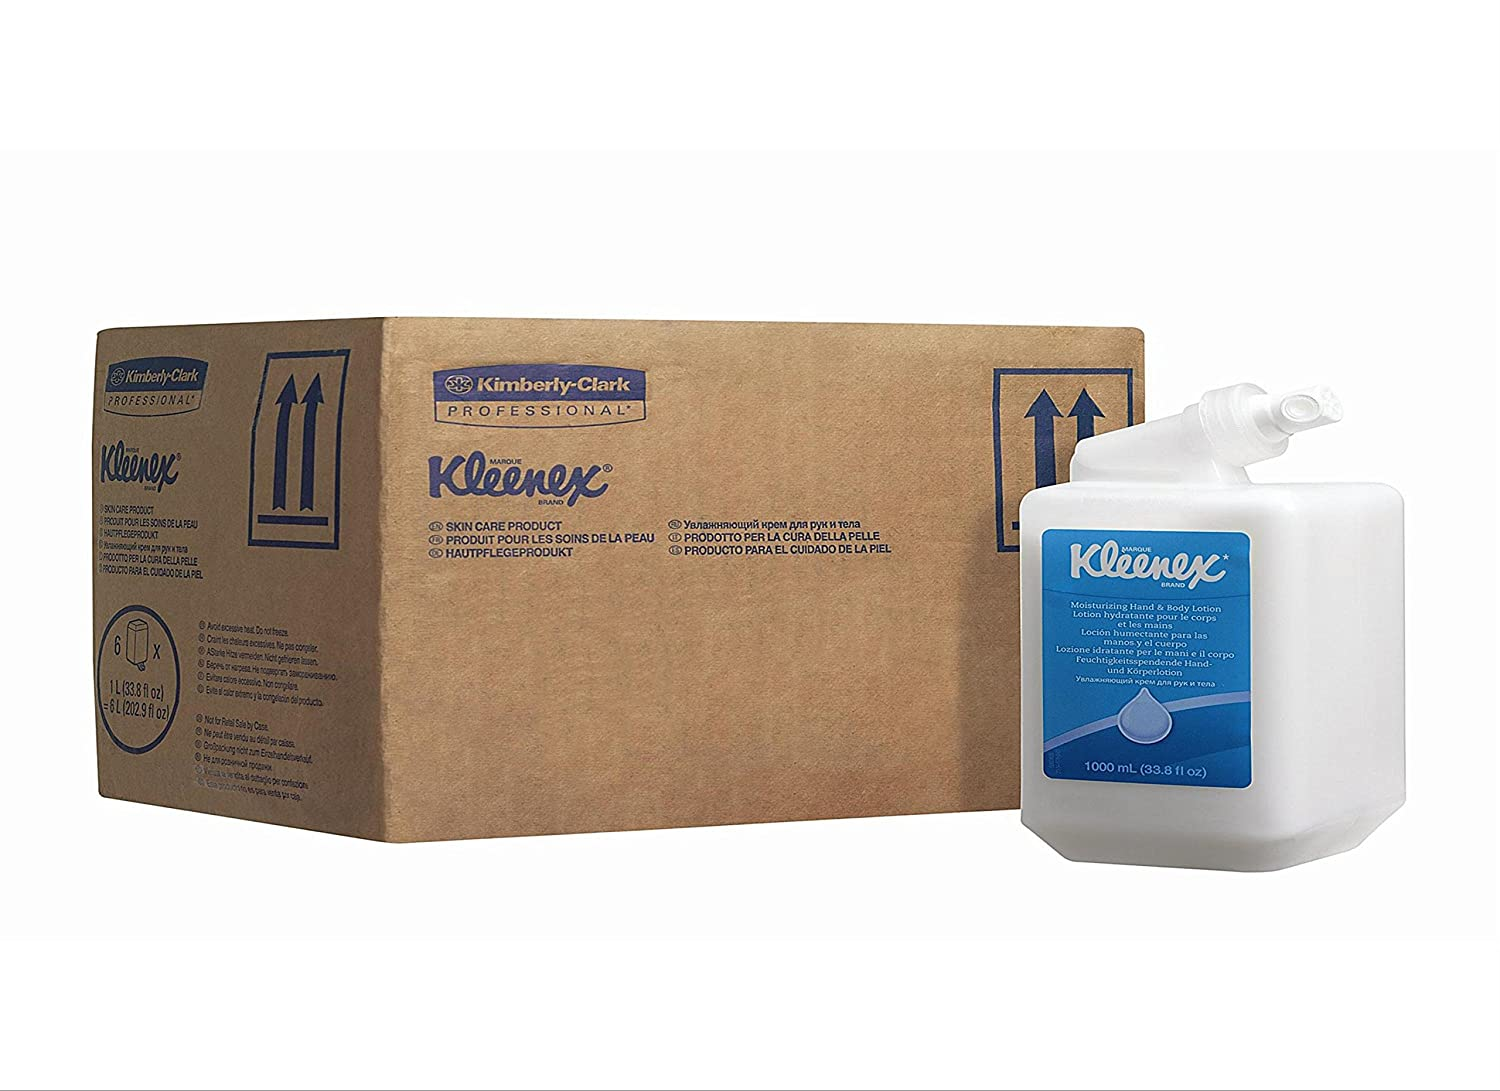 KLEENEX* Moisturising Hand and Body Lotion (product code 6373) 6 cassettes, 1 Ltr - White Kimberly-Clark Professional (EU) 35362